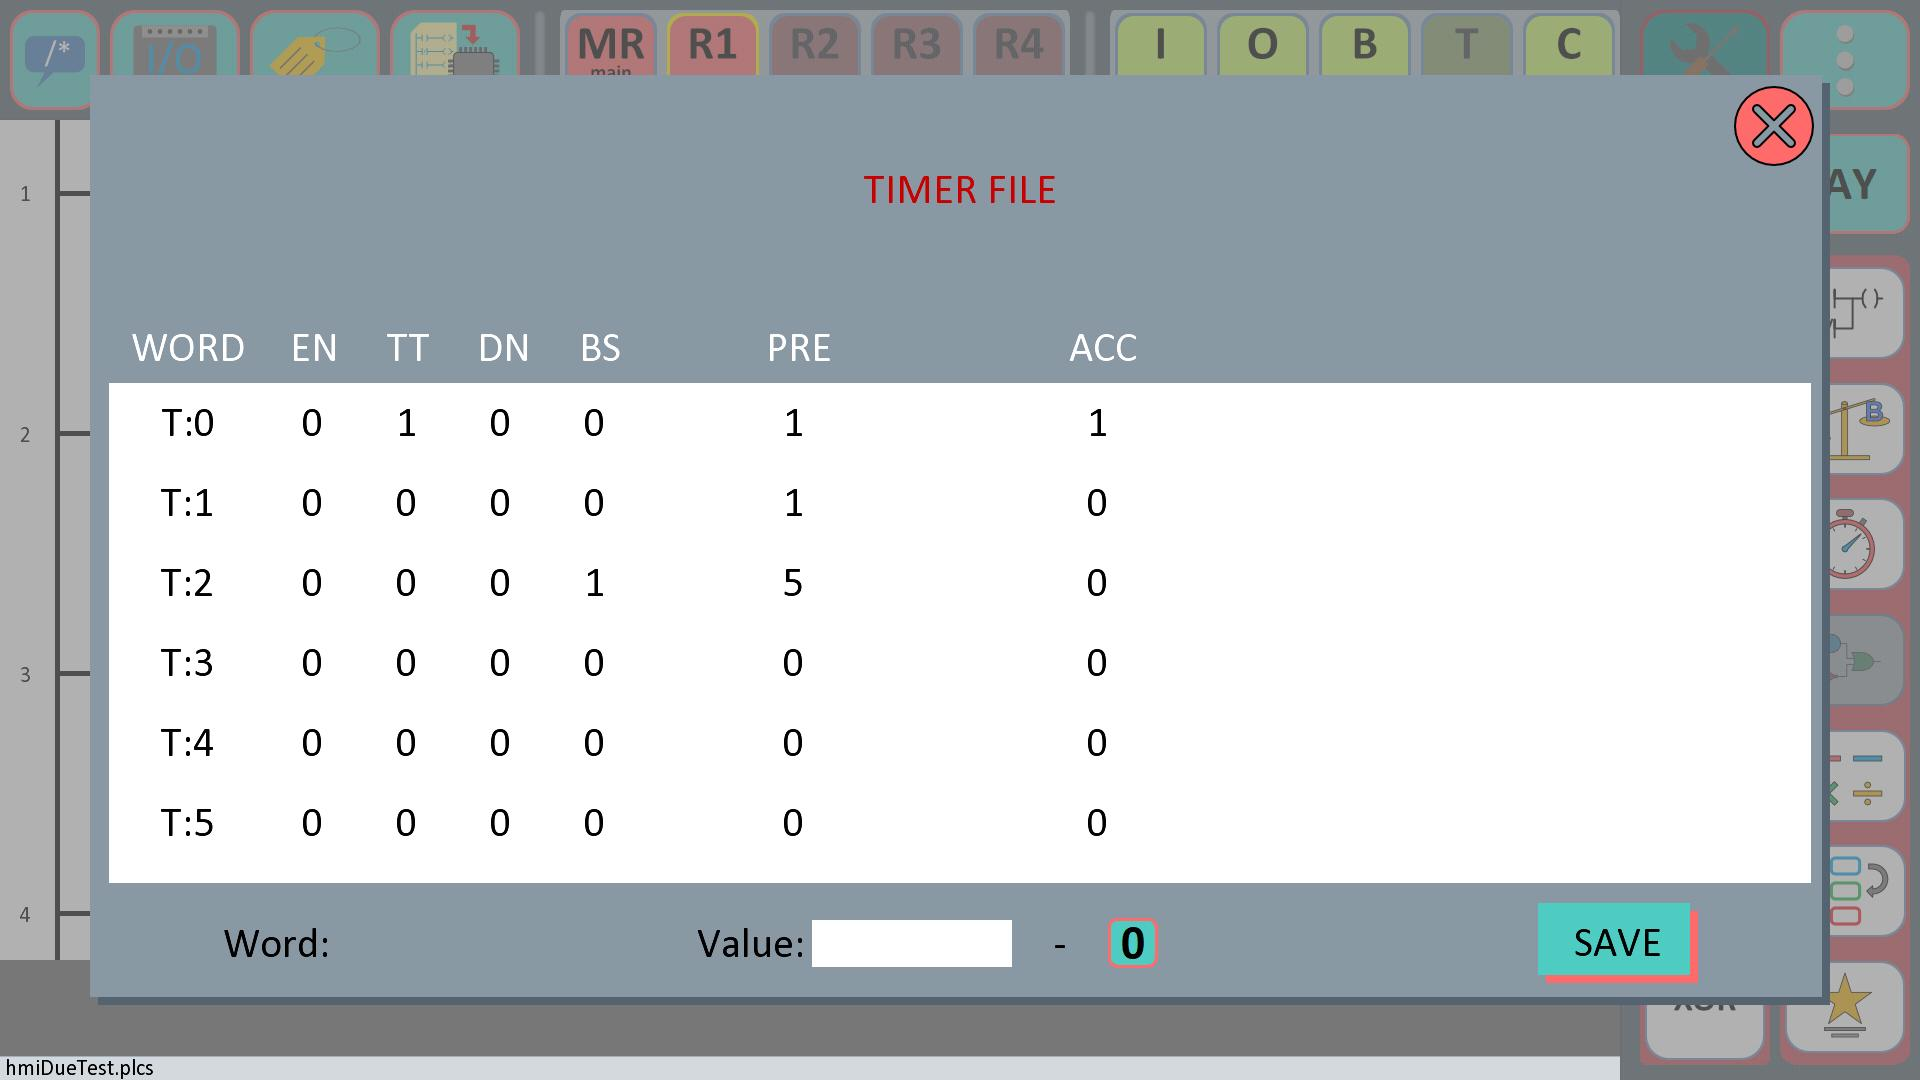 PLC Ladder Simulator 2 for Android - APK Download